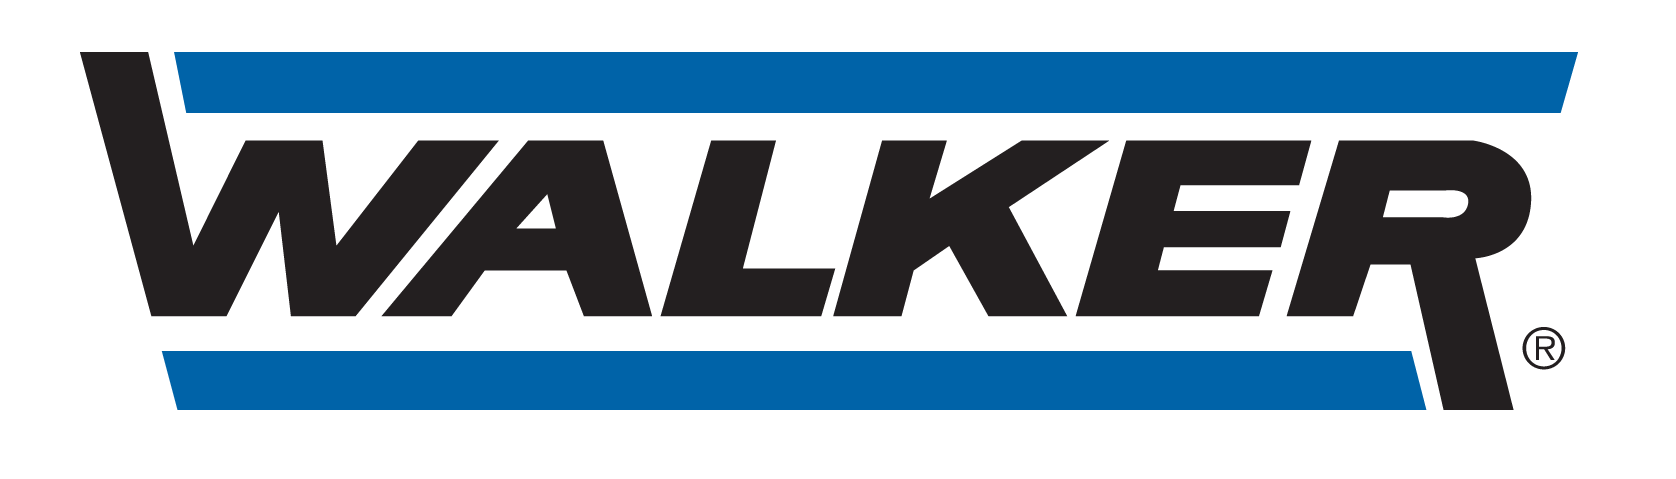 GARAGE PLASSARD - logo Walker